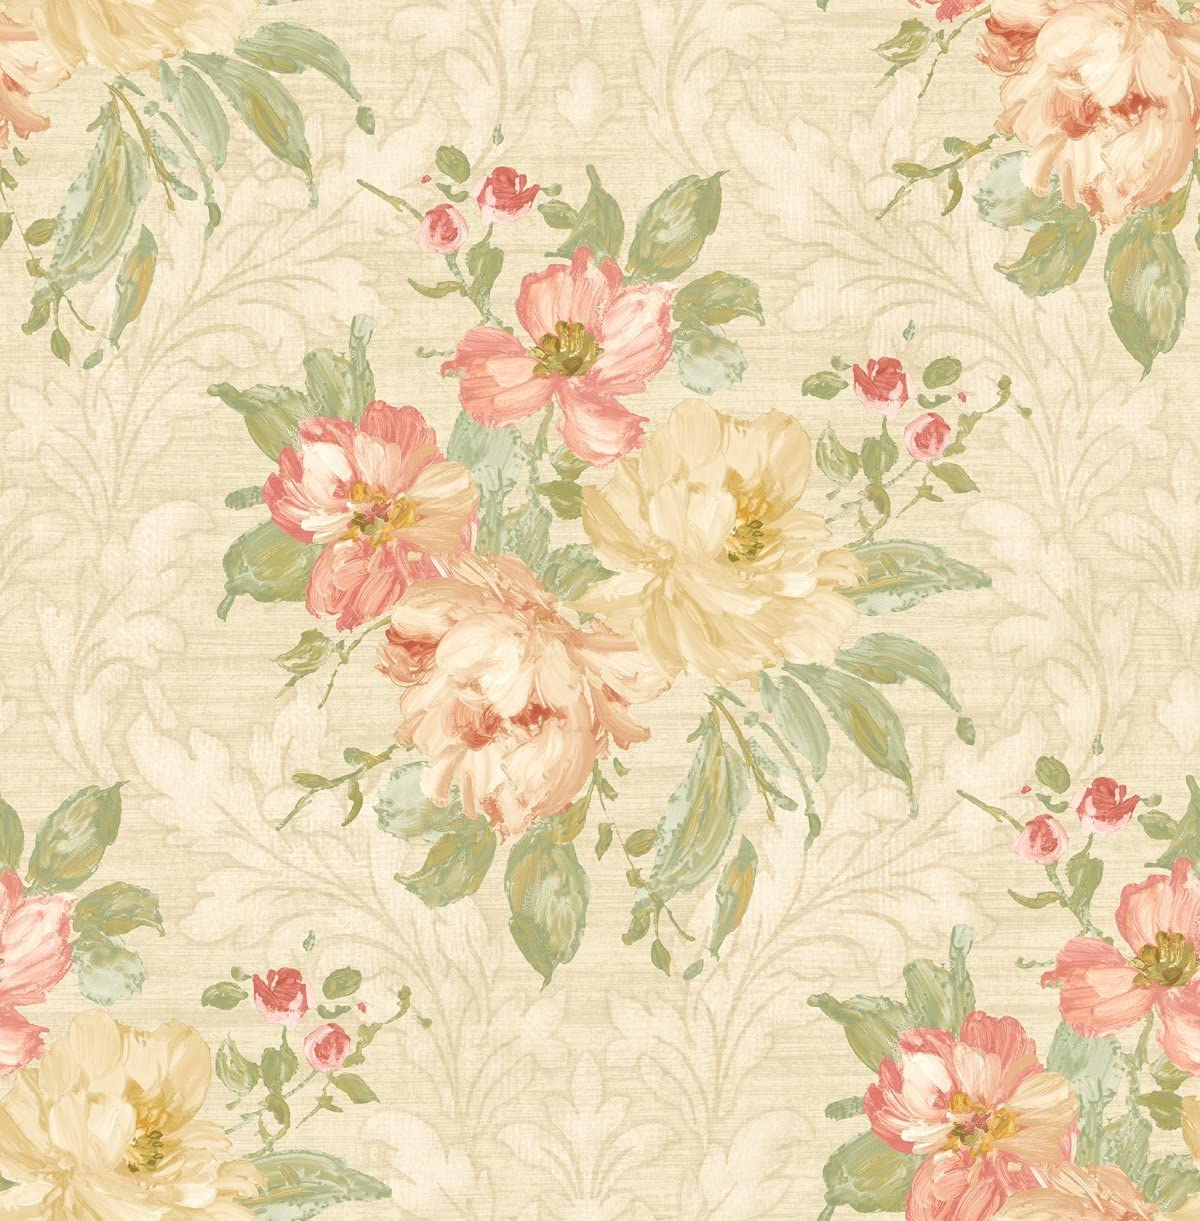 Vintage Wallpaper Floral Wallpaper Damask Wallpaper Victorian